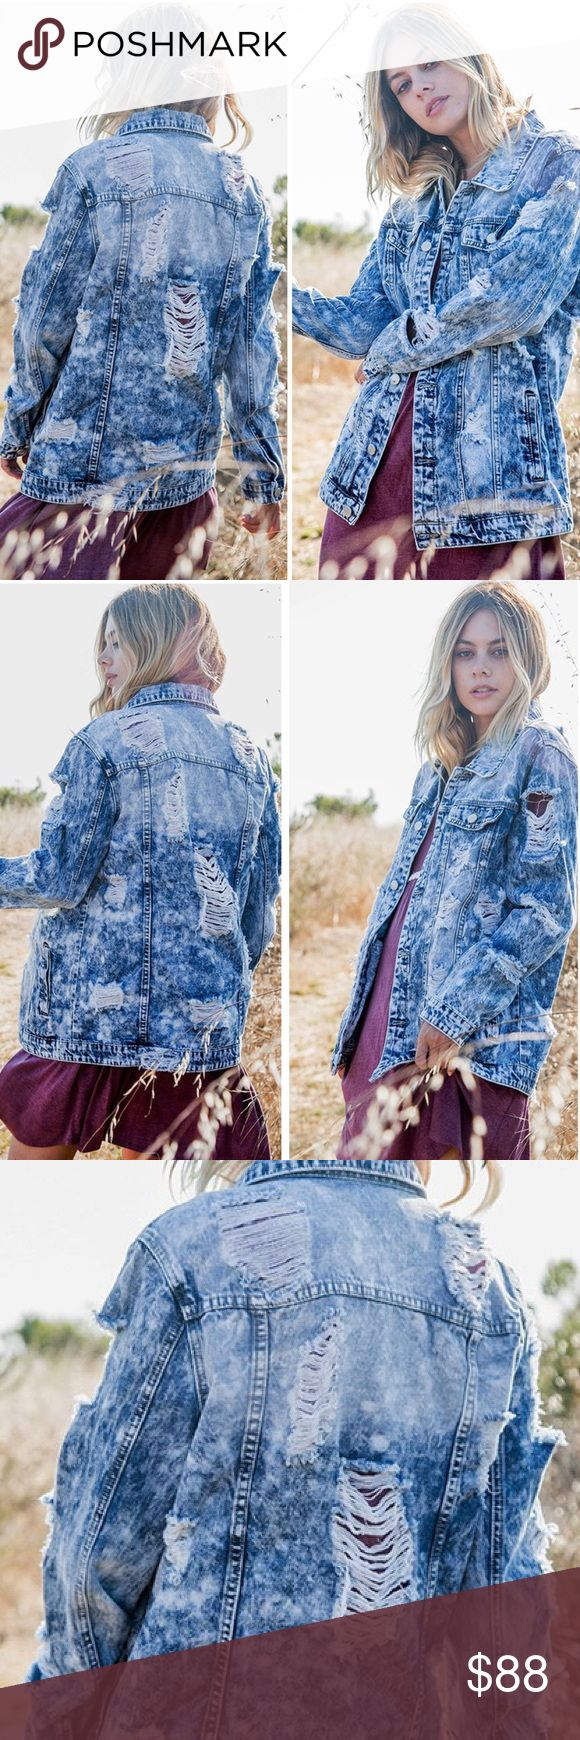 """Distressed Jean Jacket ❕COMING THIS SEPTEMBER❕ Distressed blue denim jean jacket. Side buttons, button cuffs, loose fit. 🔸This is not Free People, but is very close to the style.   * Before asking, please note whatever sizes are listed below are all I currently have in stock.   ▫️Add to Bundle"""" to add more items in my closet or """"Buy"""" to checkout here with your size.  ↓Follow me on Instagram ↓         @ love.jen.marie Free People Jackets & Coats Jean Jackets"""